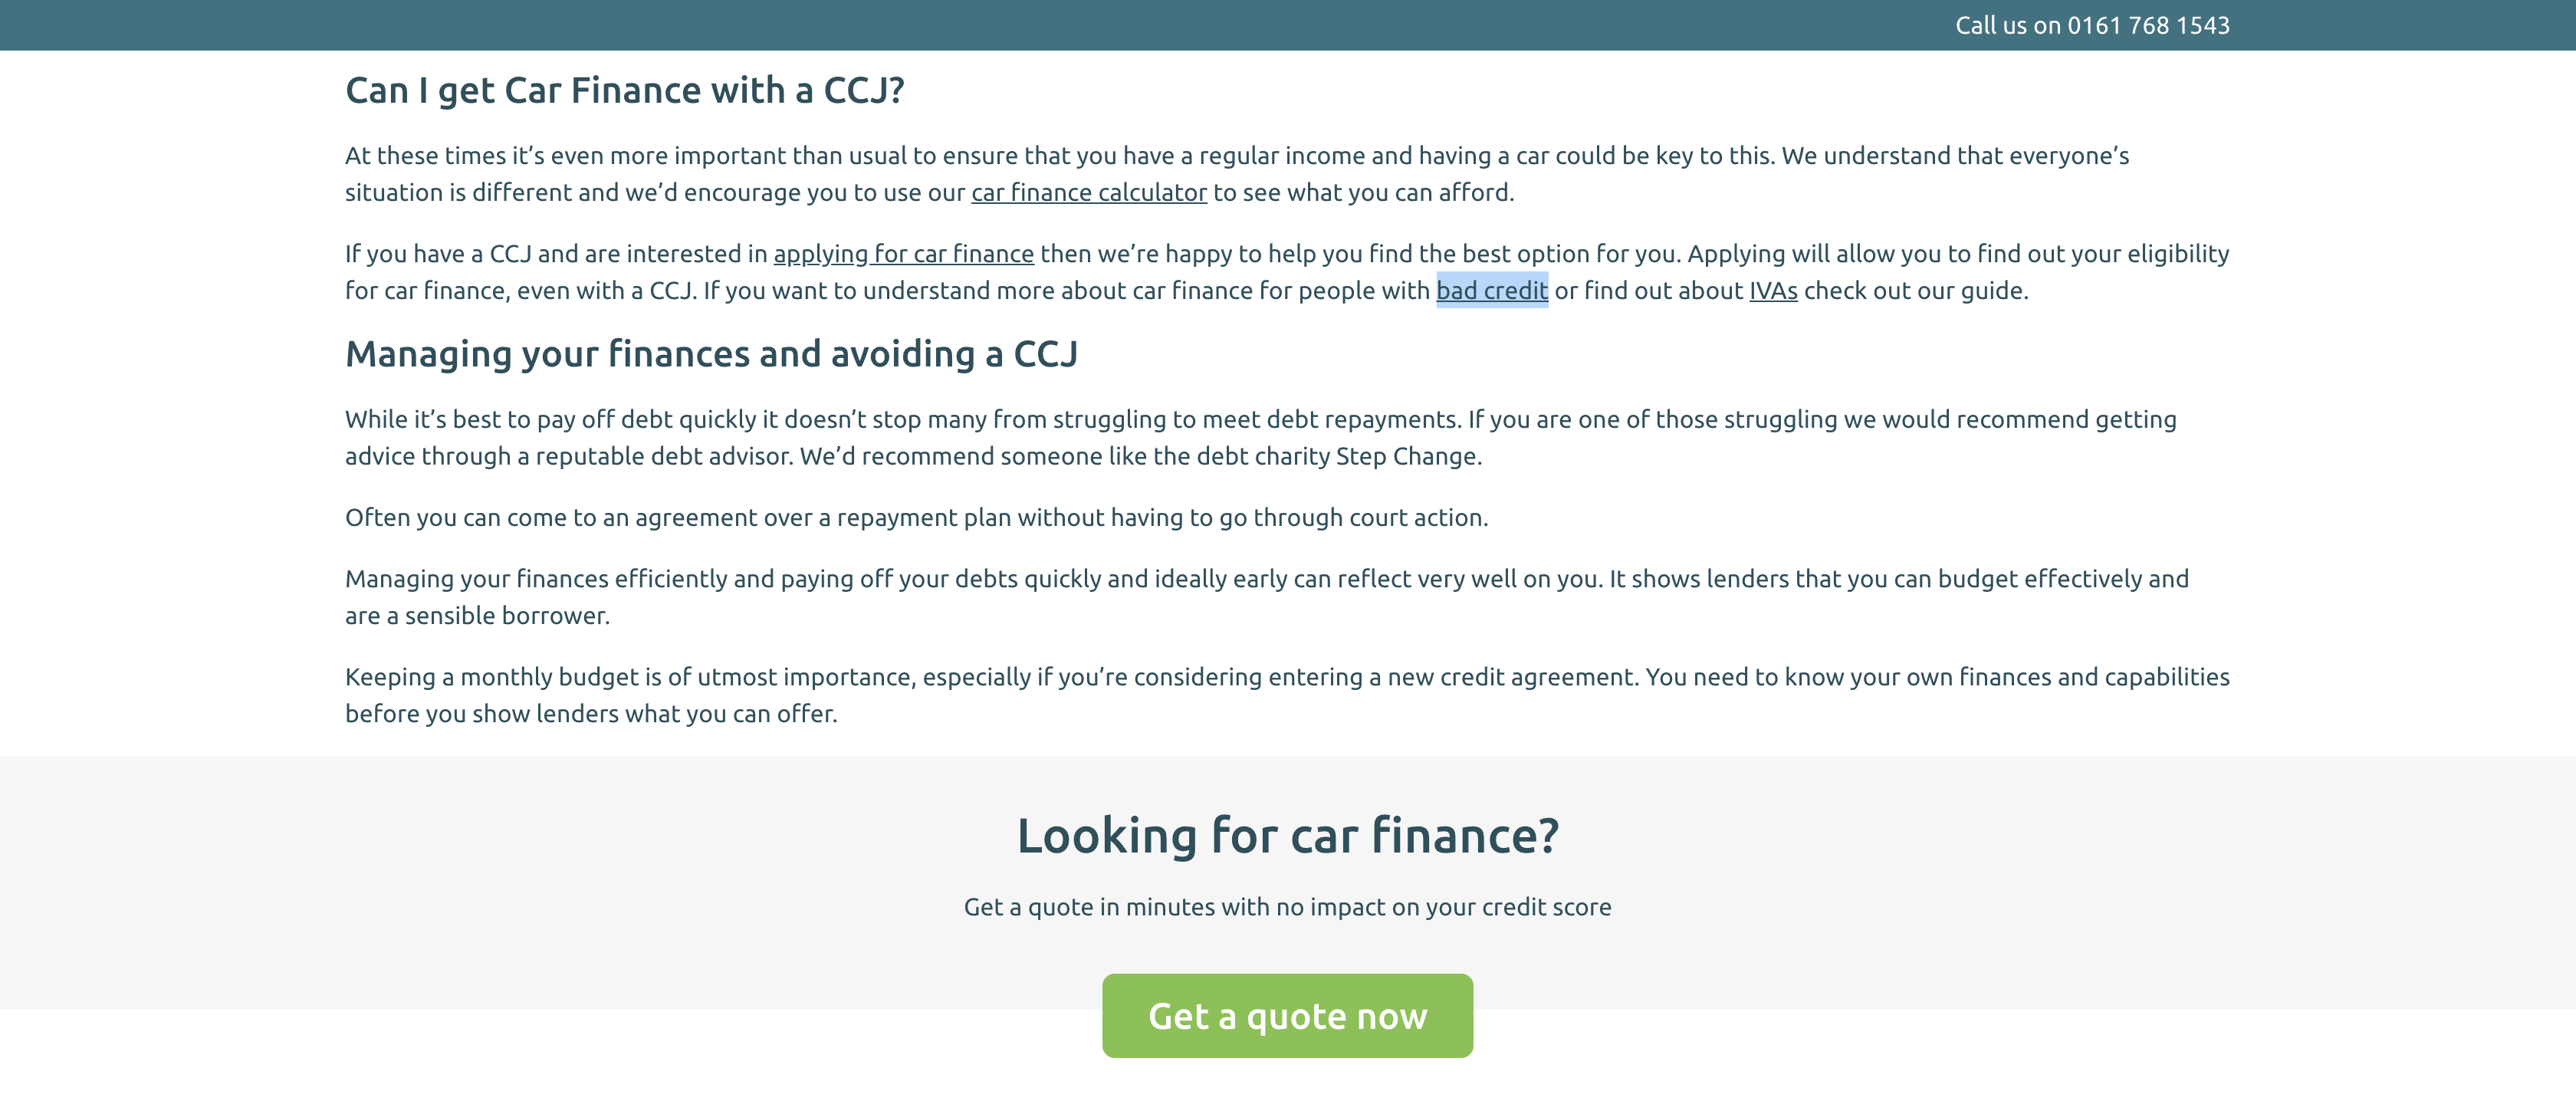 CCJ Car Finance Internal Links Example